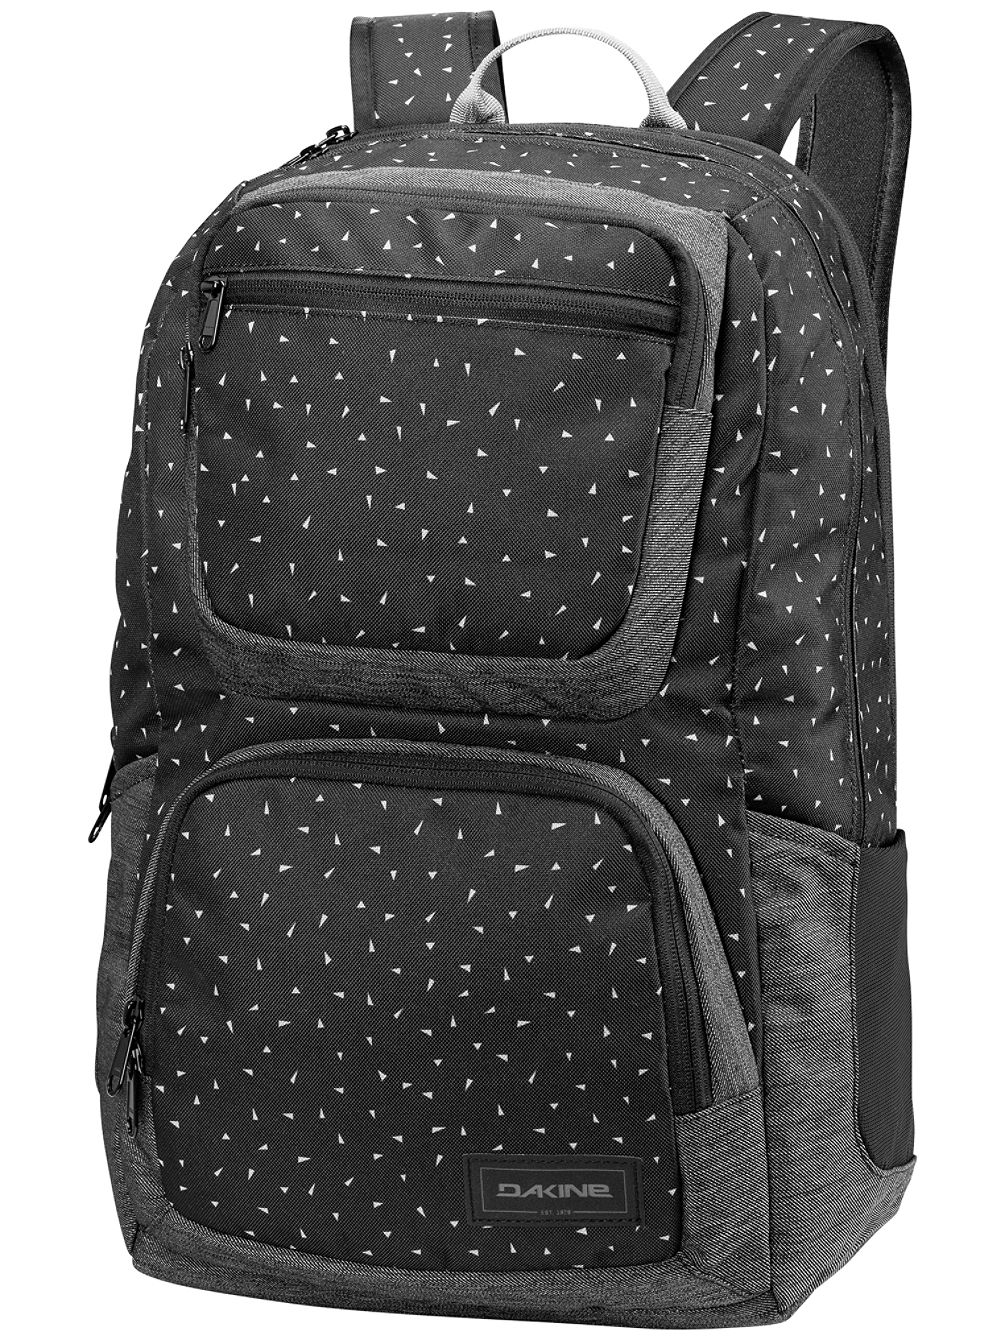 Jewel 26L Backpack